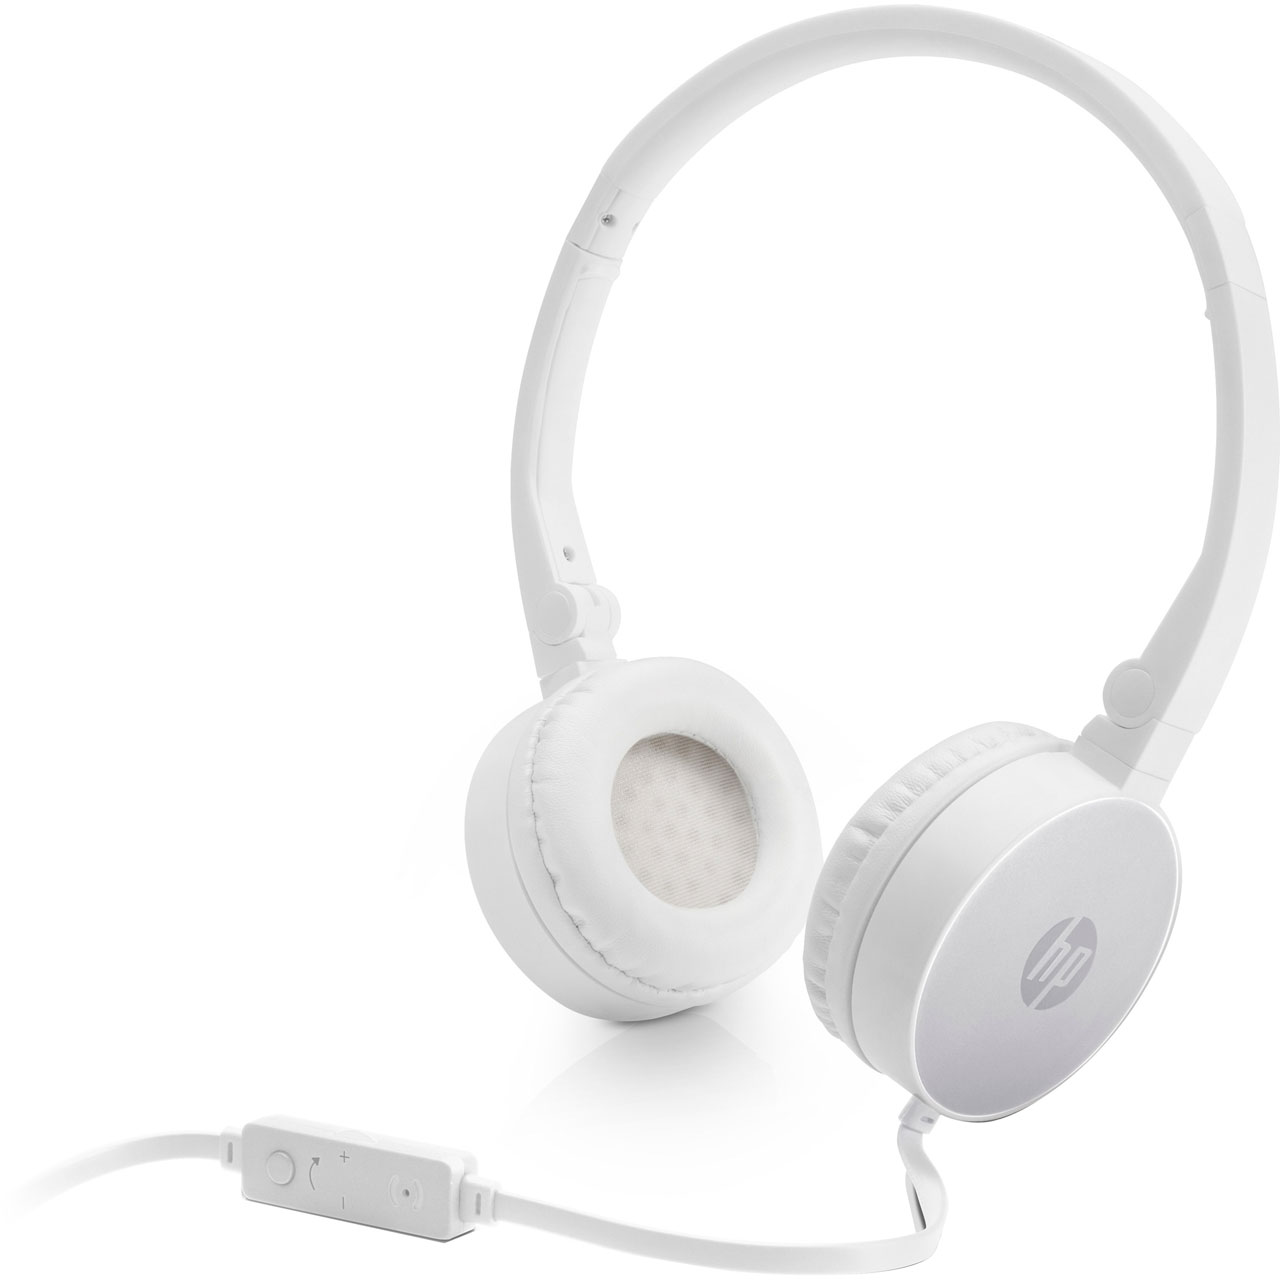 HP H2800 White w. Pike Silver On-Ear Stereo Headphones 2AP95AA (κλήσεις & μουσική με Remote + Volume Control)